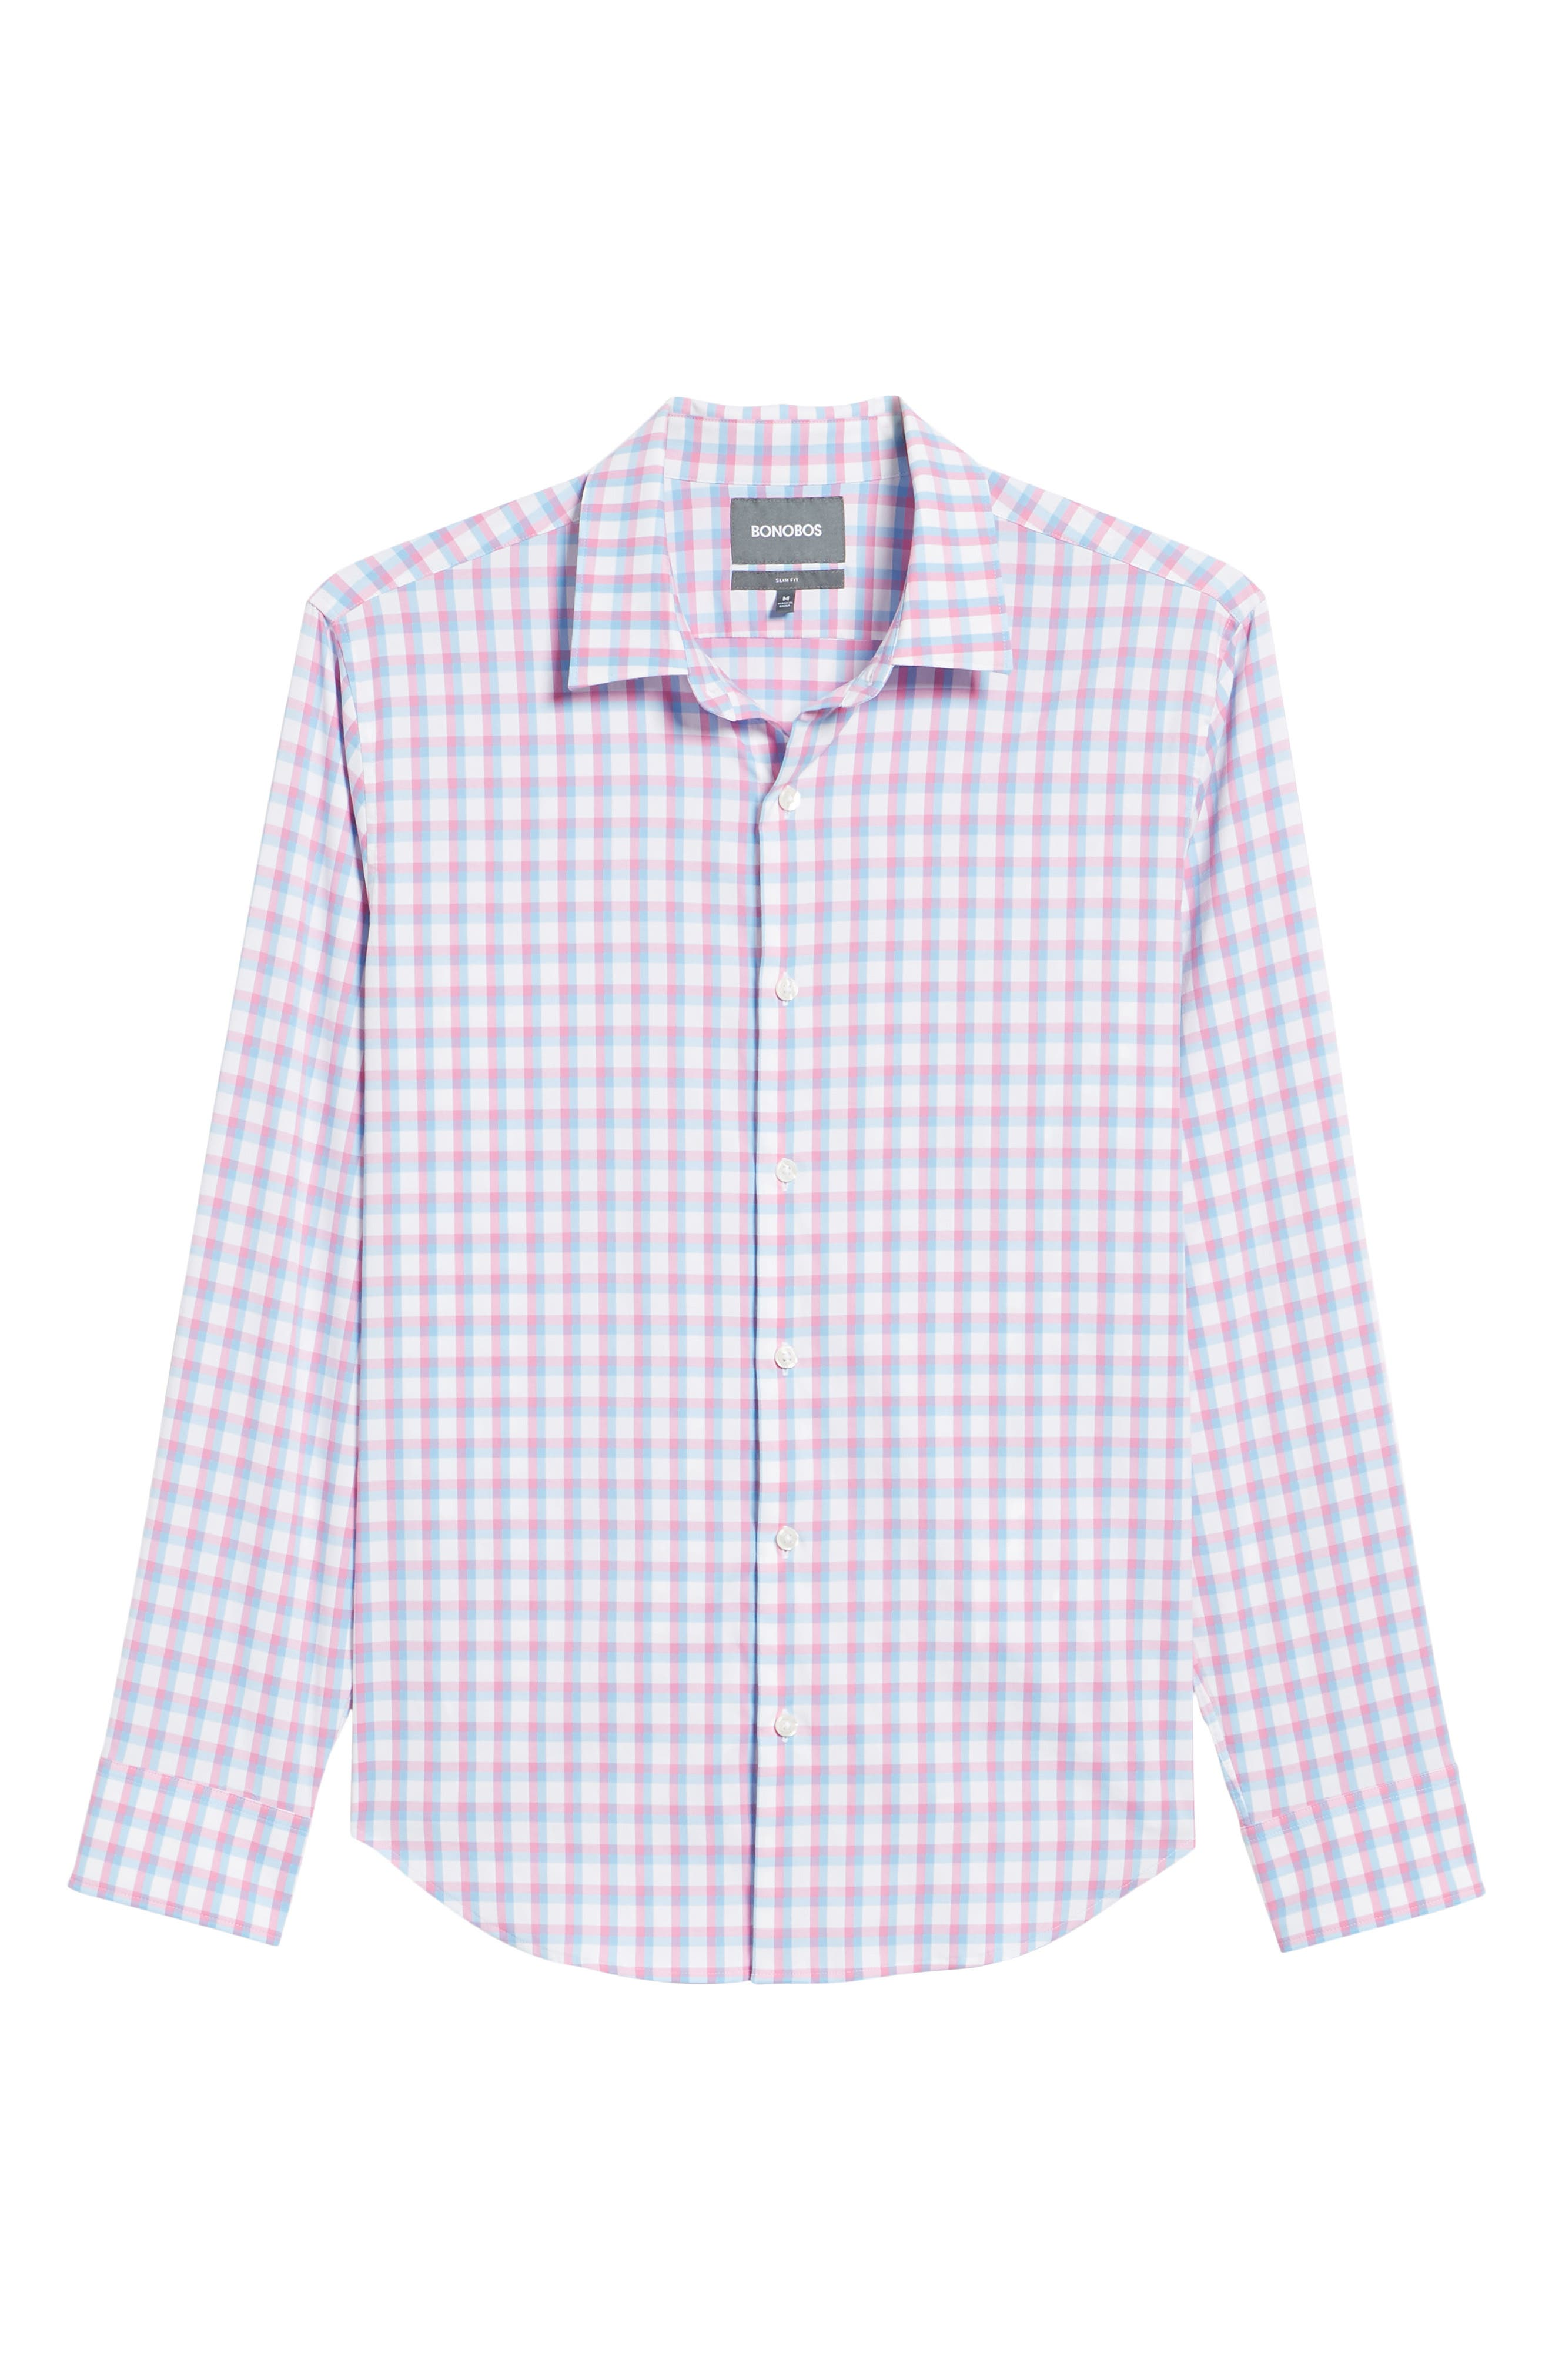 Slim Fit Check Performance Sport Shirt,                             Alternate thumbnail 6, color,                             Ultimo Check - Pacific Pink